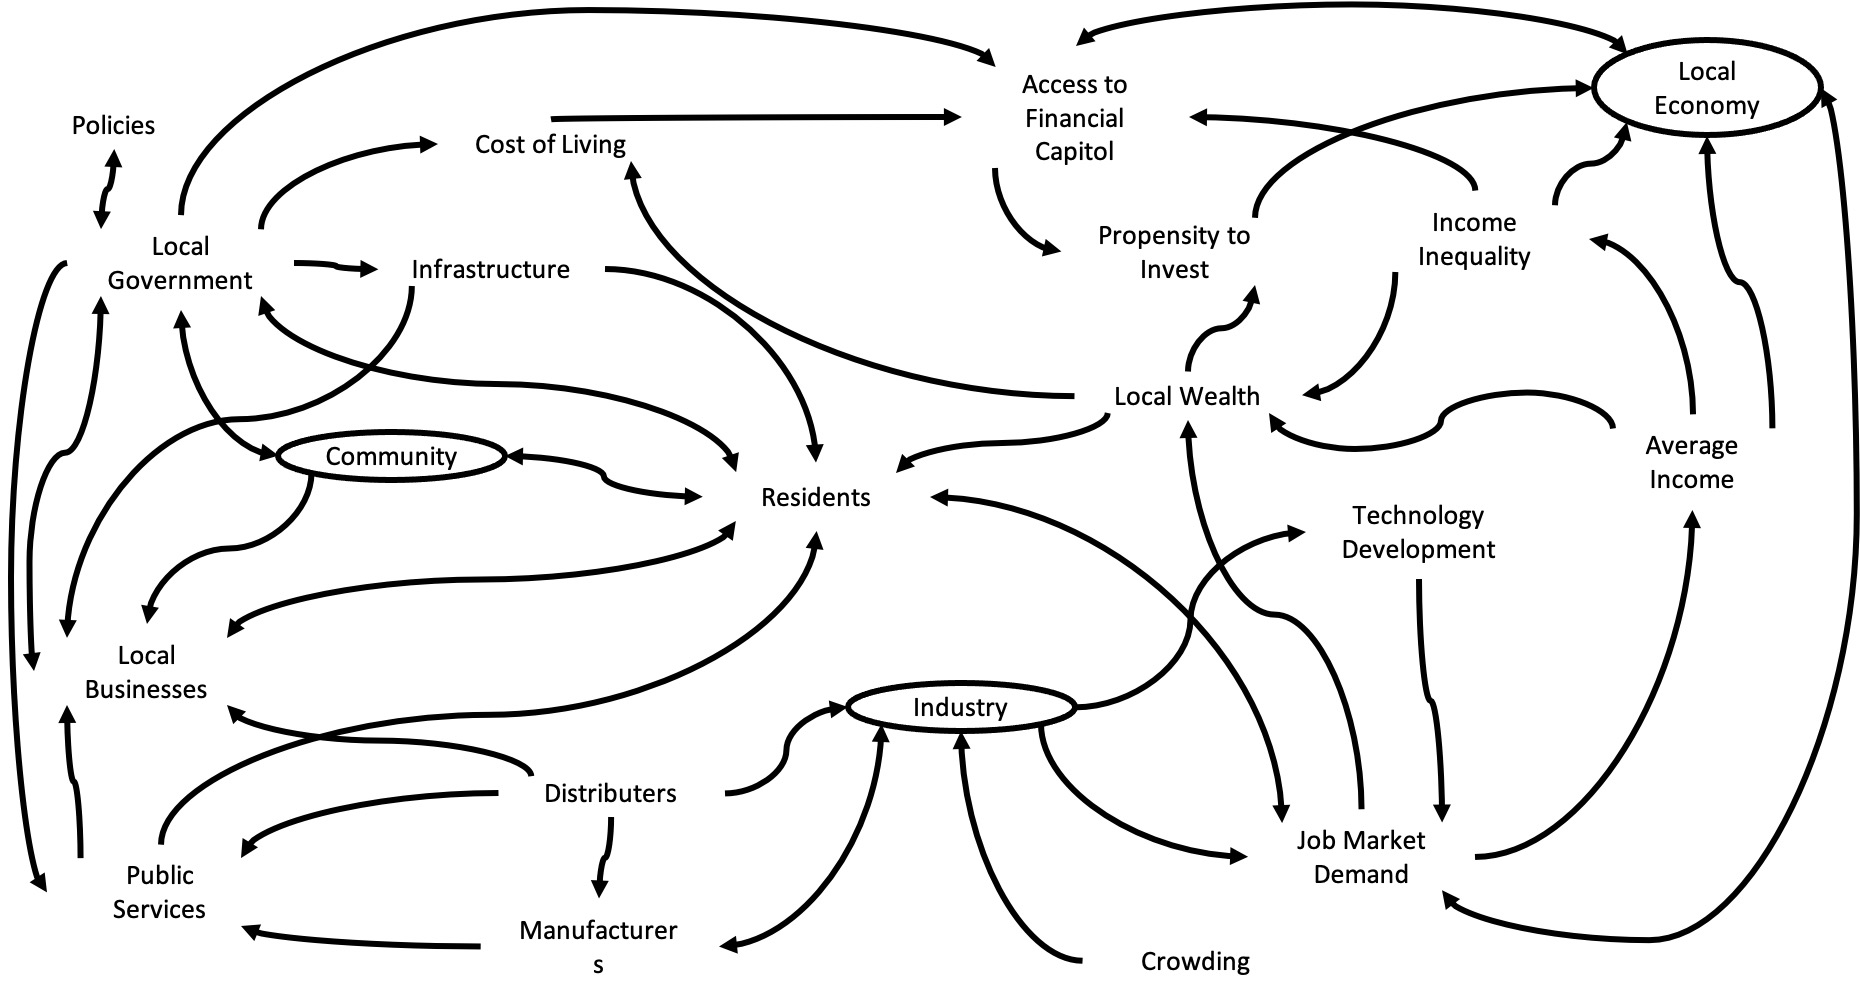 Figure 7 Economic developer Causal Loop Diagram, highlighting the place of the community, industry and local economy and their connections